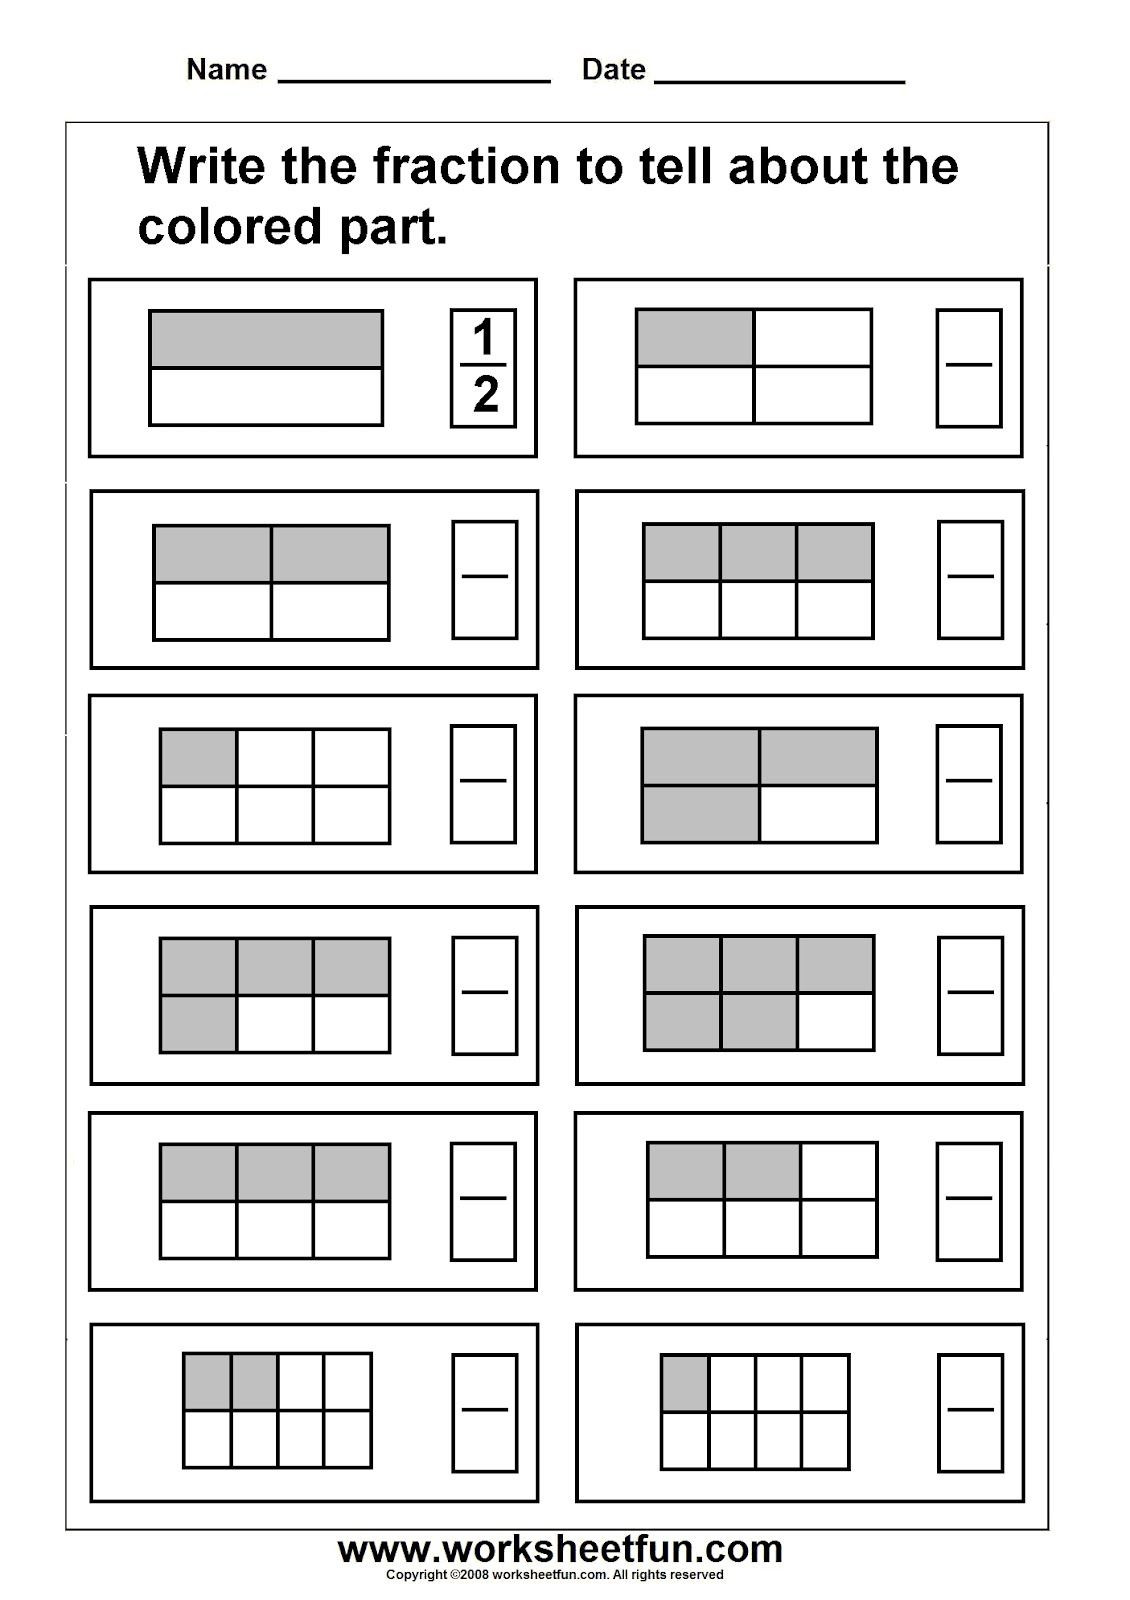 2nd Grade Fractions Worksheets Worksheetfun Free Printable Worksheets